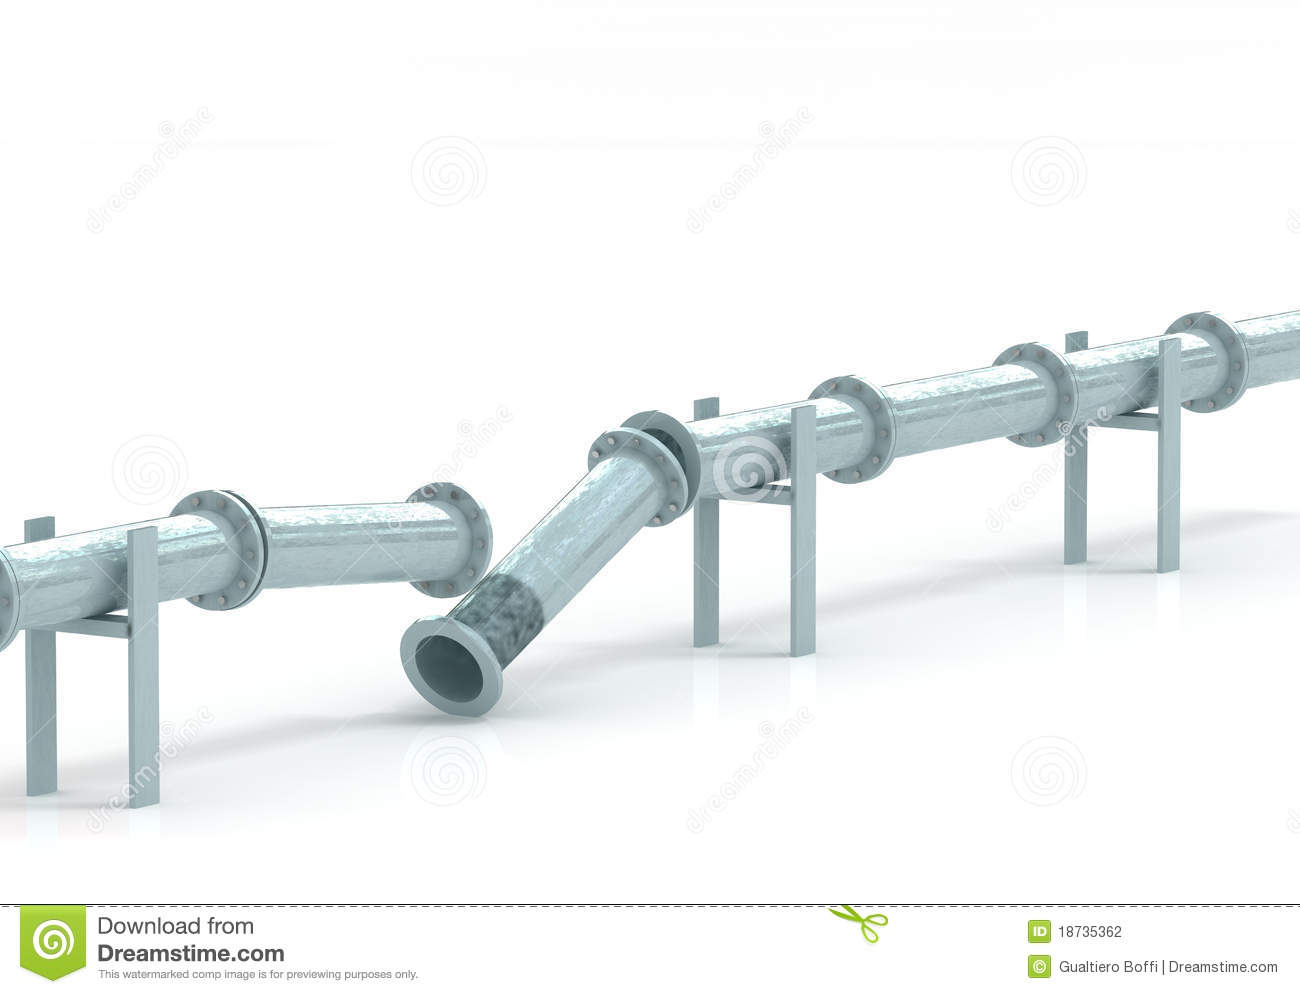 Broken pipe clipart png freeuse 91+ Pipeline Clipart | ClipartLook png freeuse